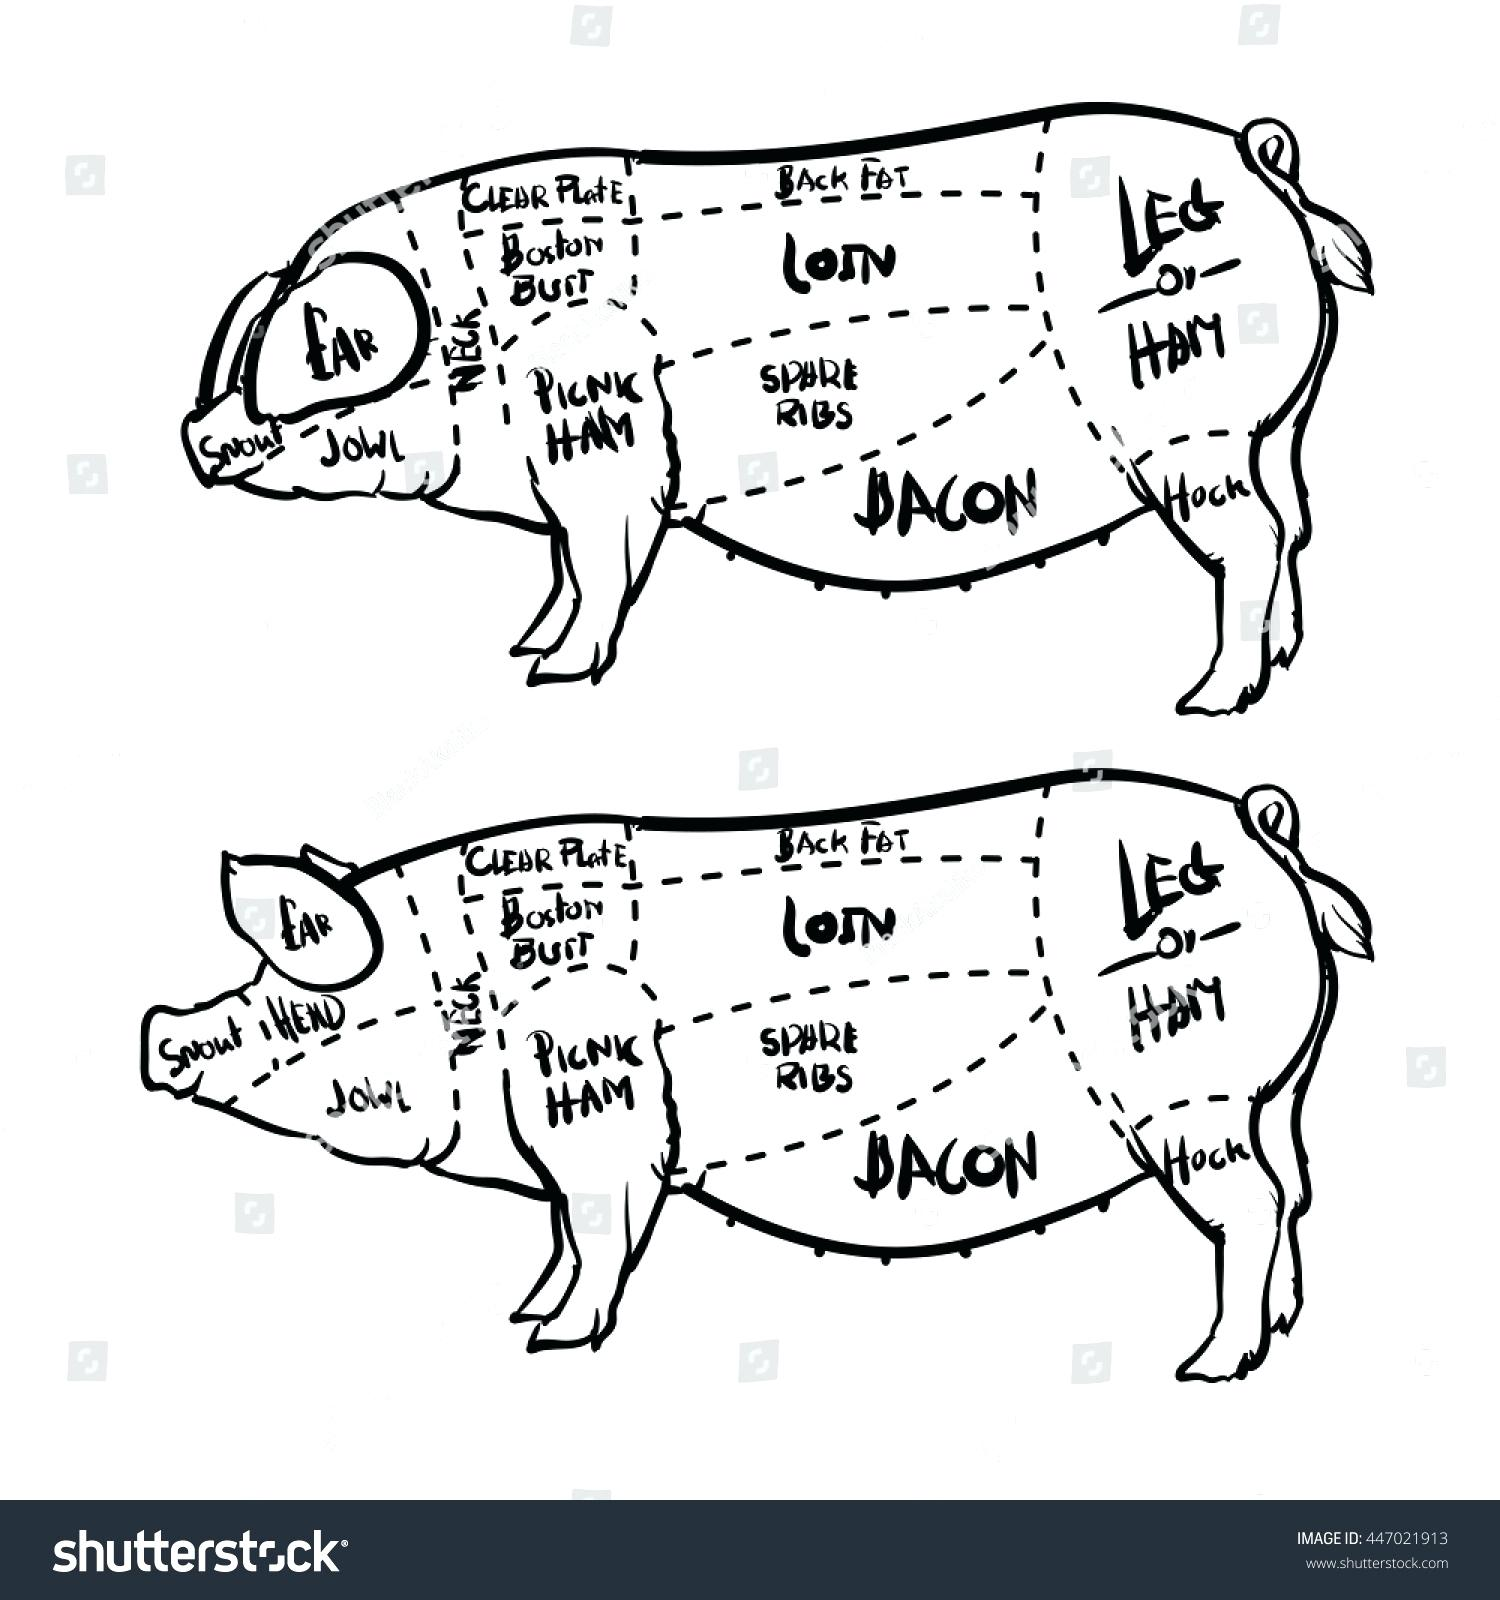 Pork Drawing at GetDrawings.com | Free for personal use Pork Drawing ...